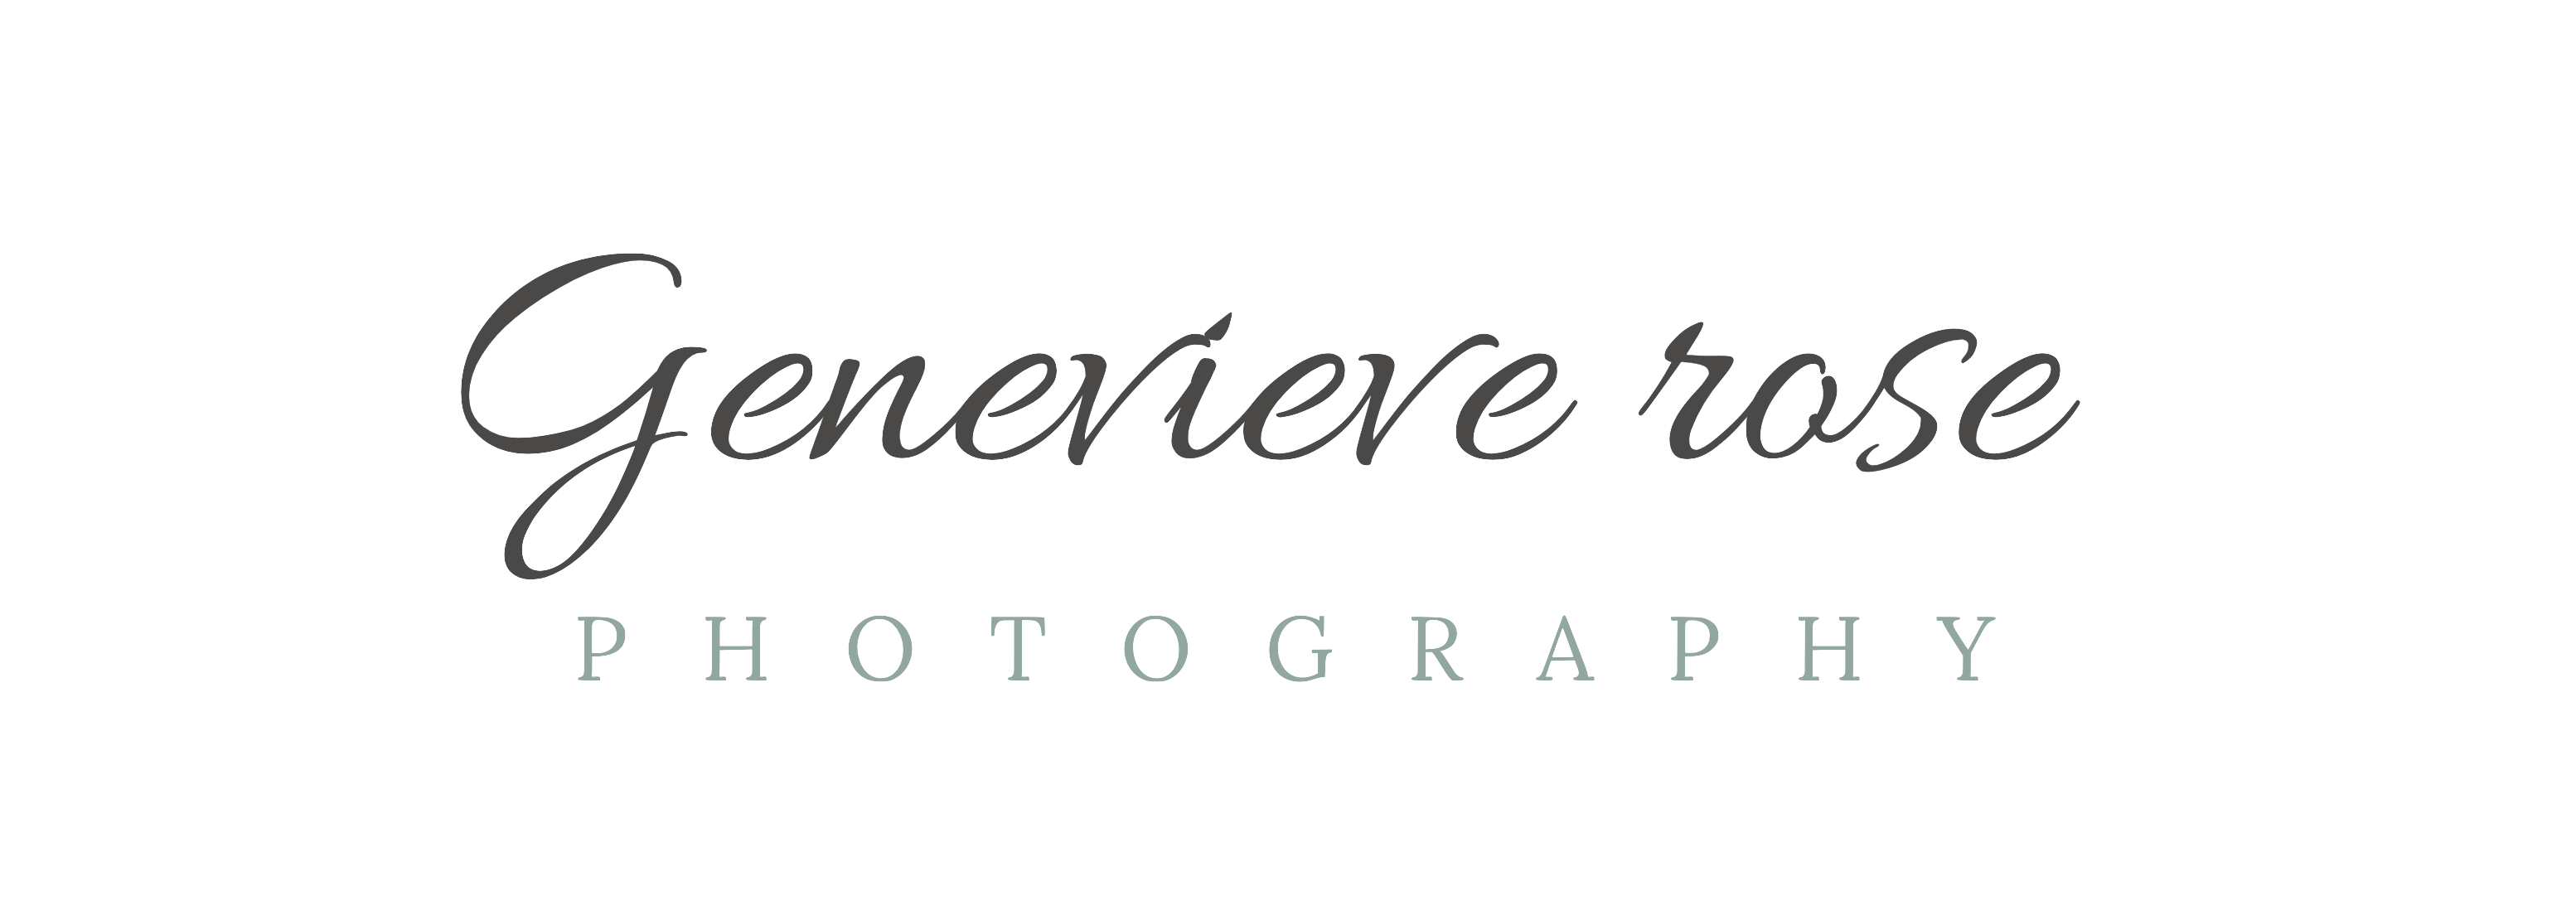 Genevieve Rose photography